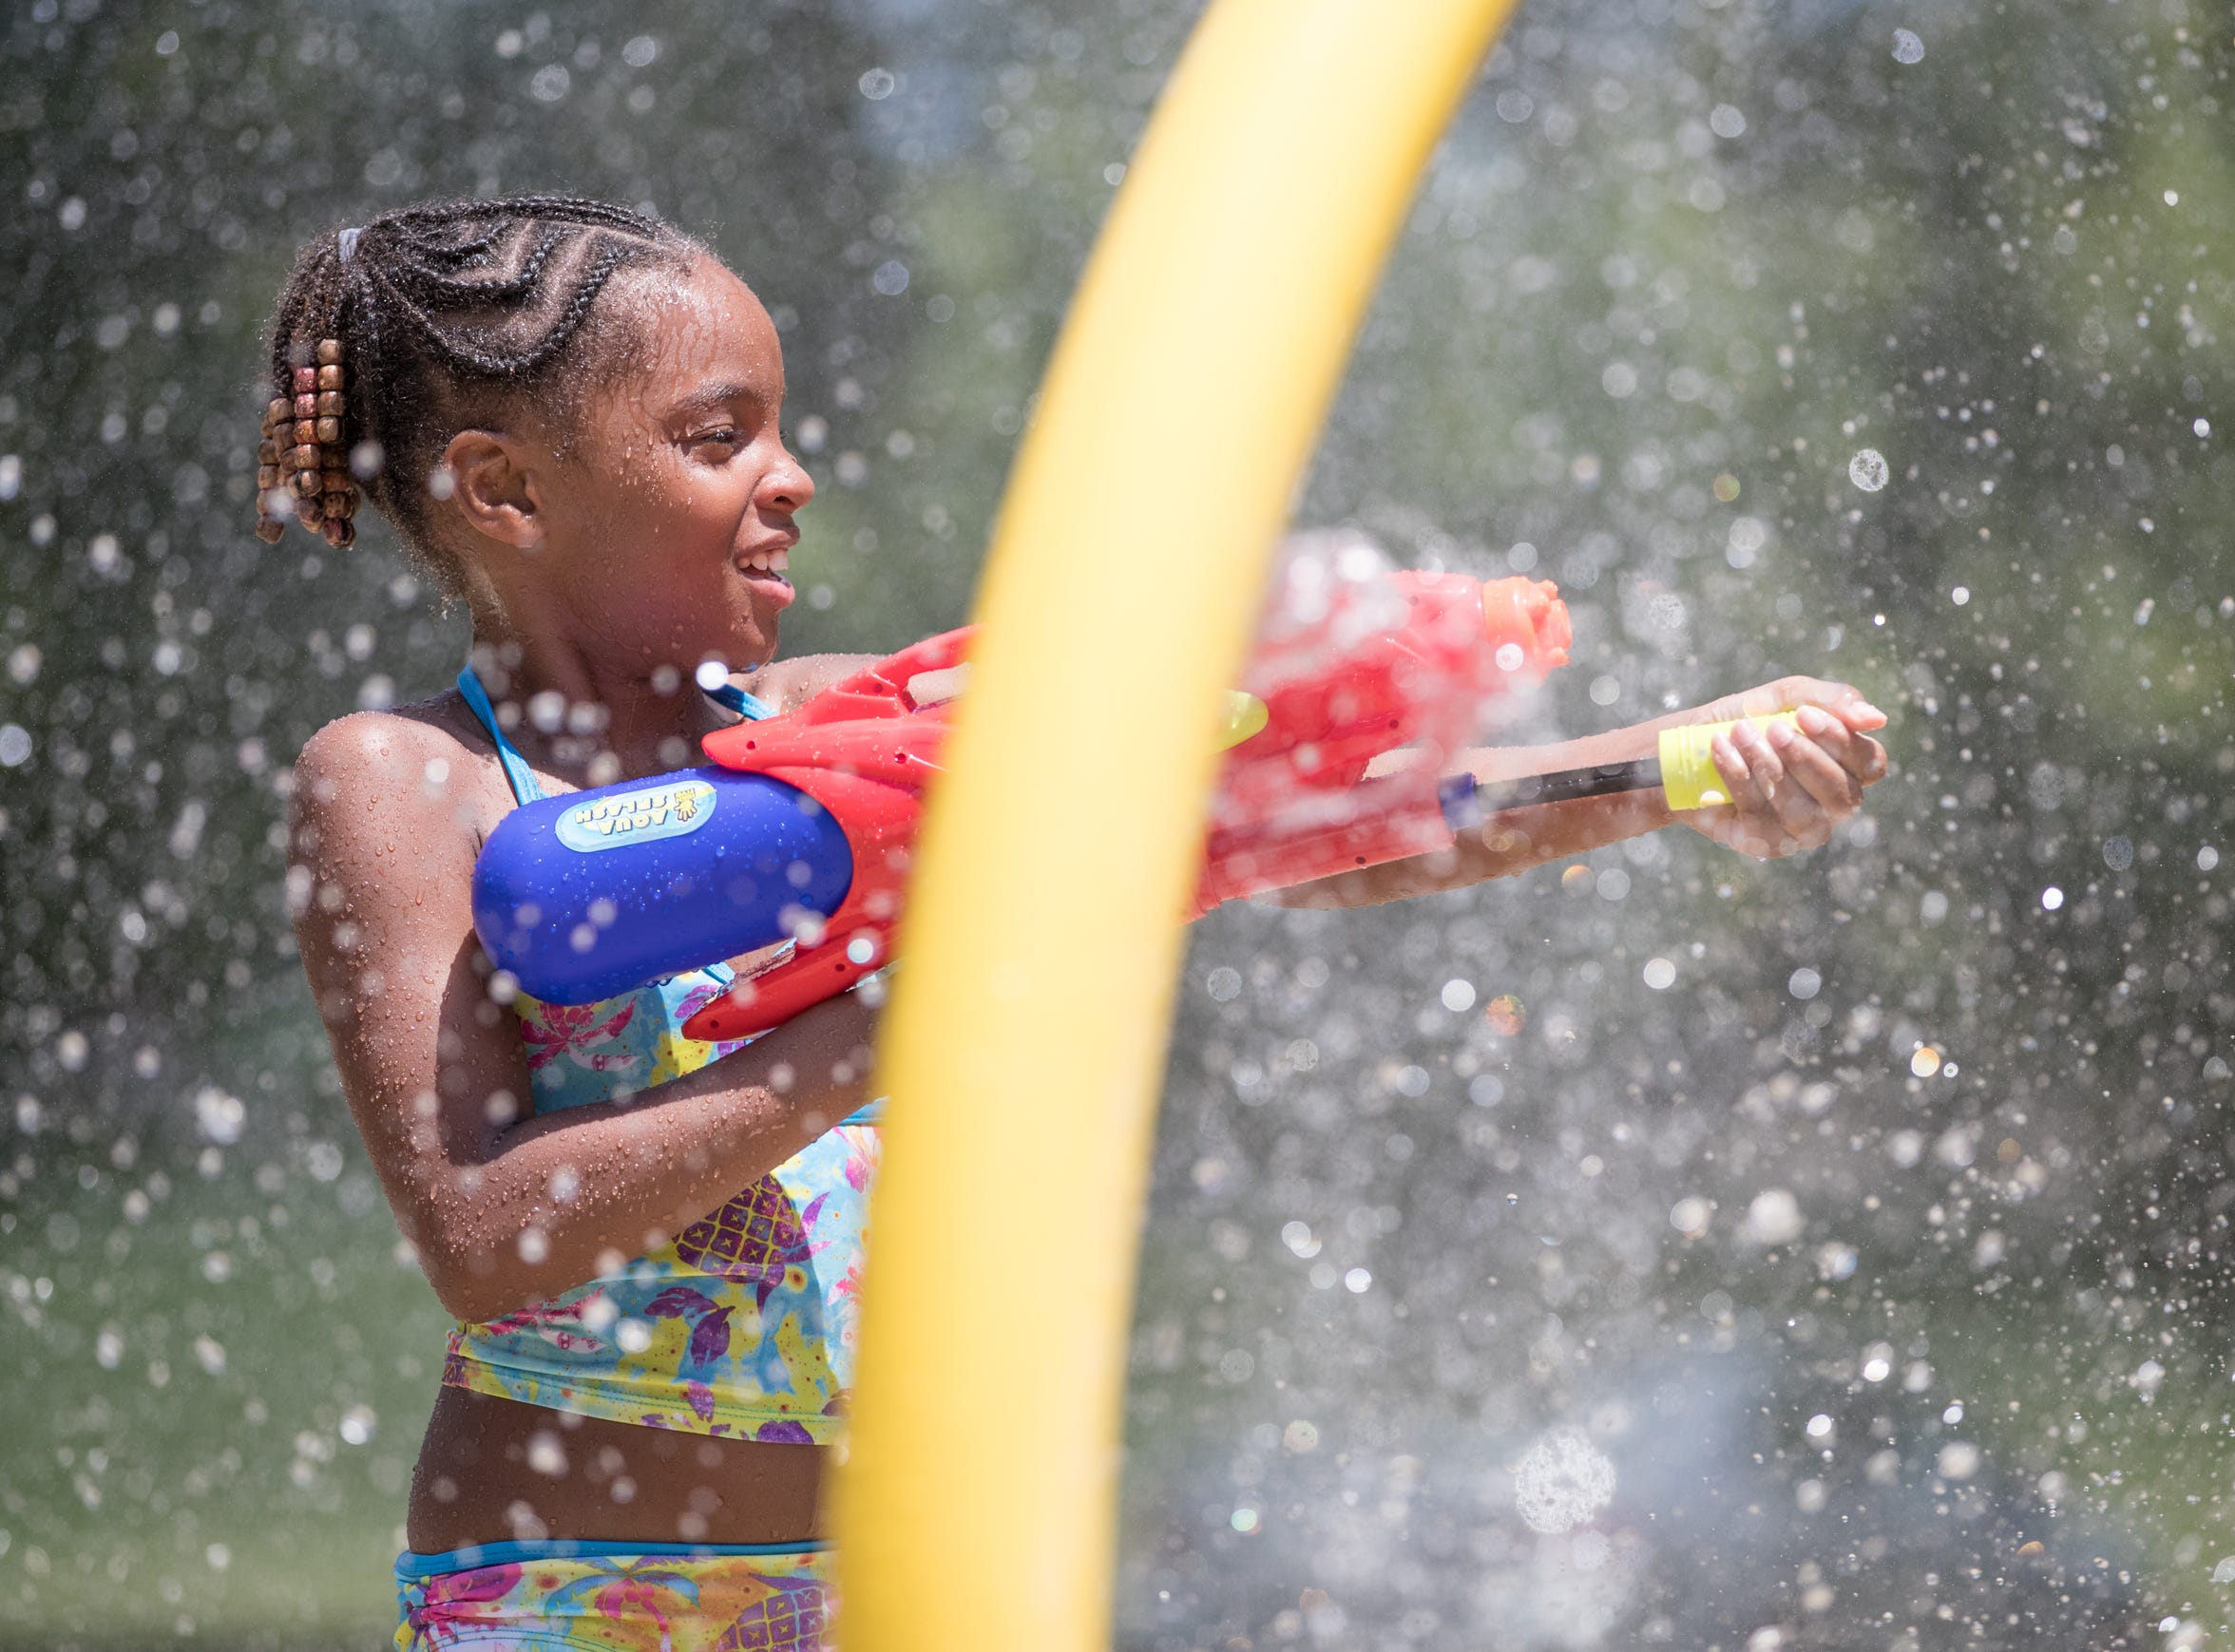 Alaiah Walliams sprays her friend with a water gun at  Bertha Ross Park splash pad in Indianapolis on Thursday, June 28, 2018.